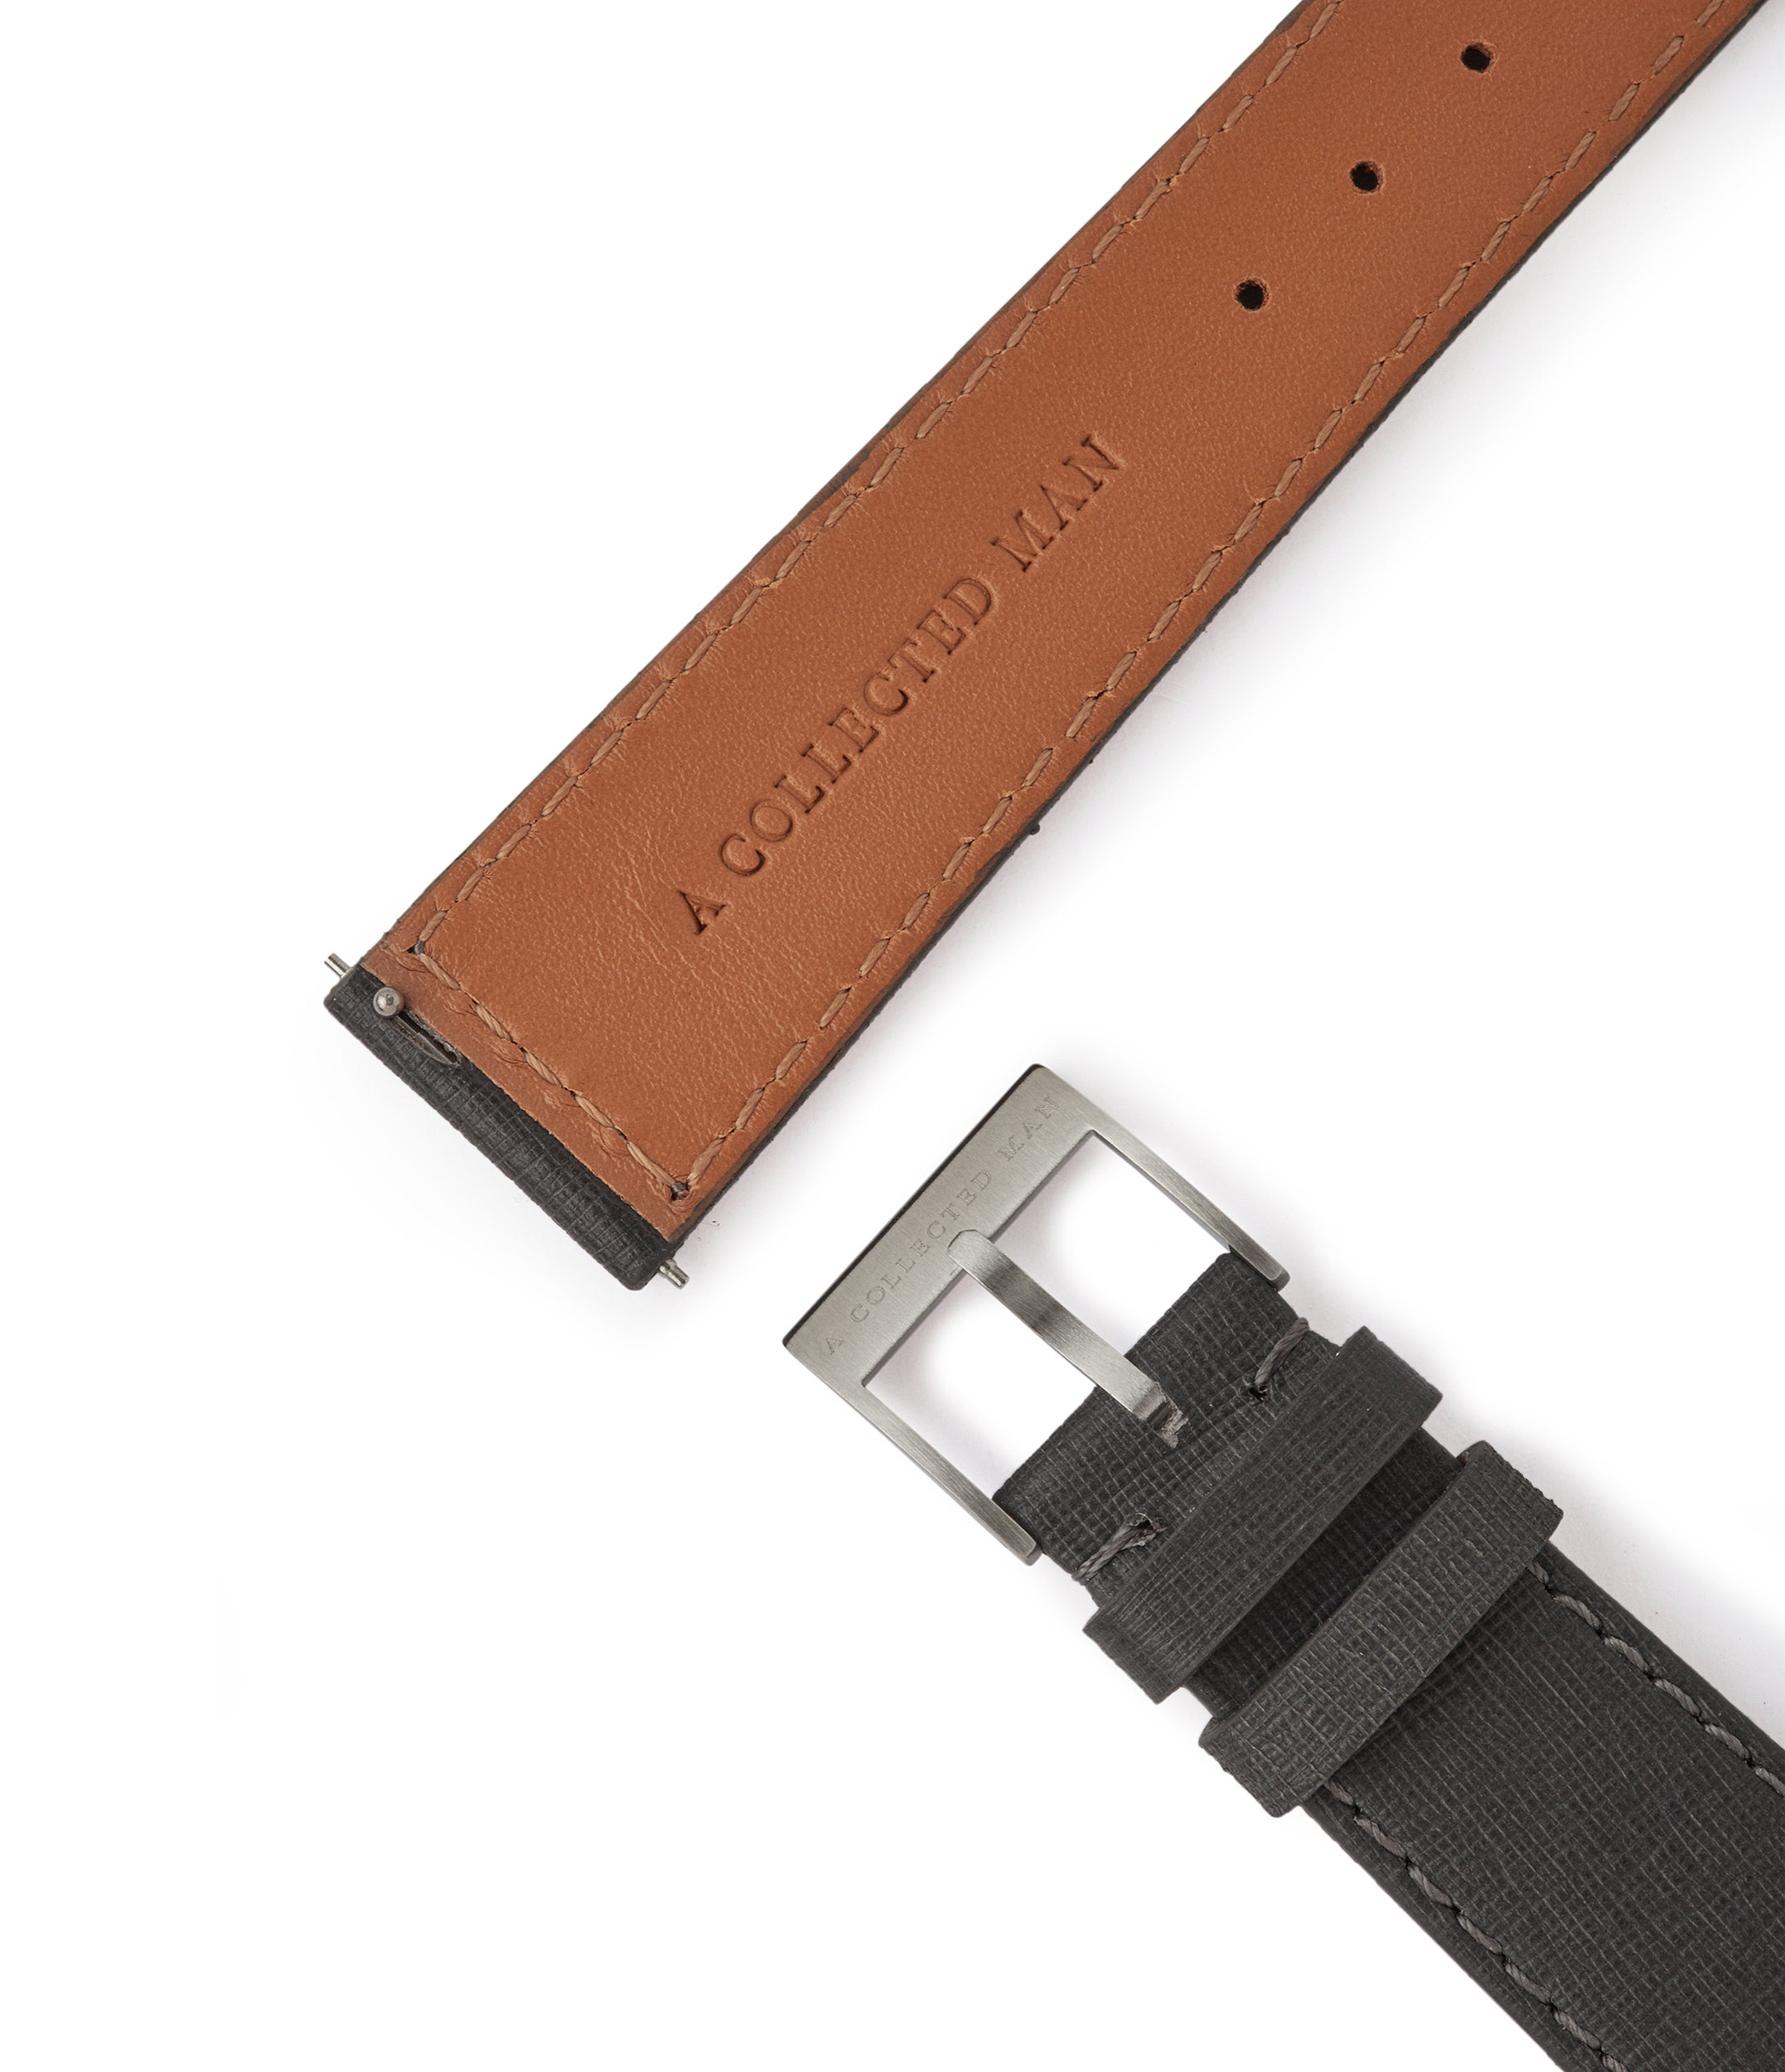 shop luxury grey Saffiano Venice grained leather watch strap 20mm for sale online at A Collected Man London